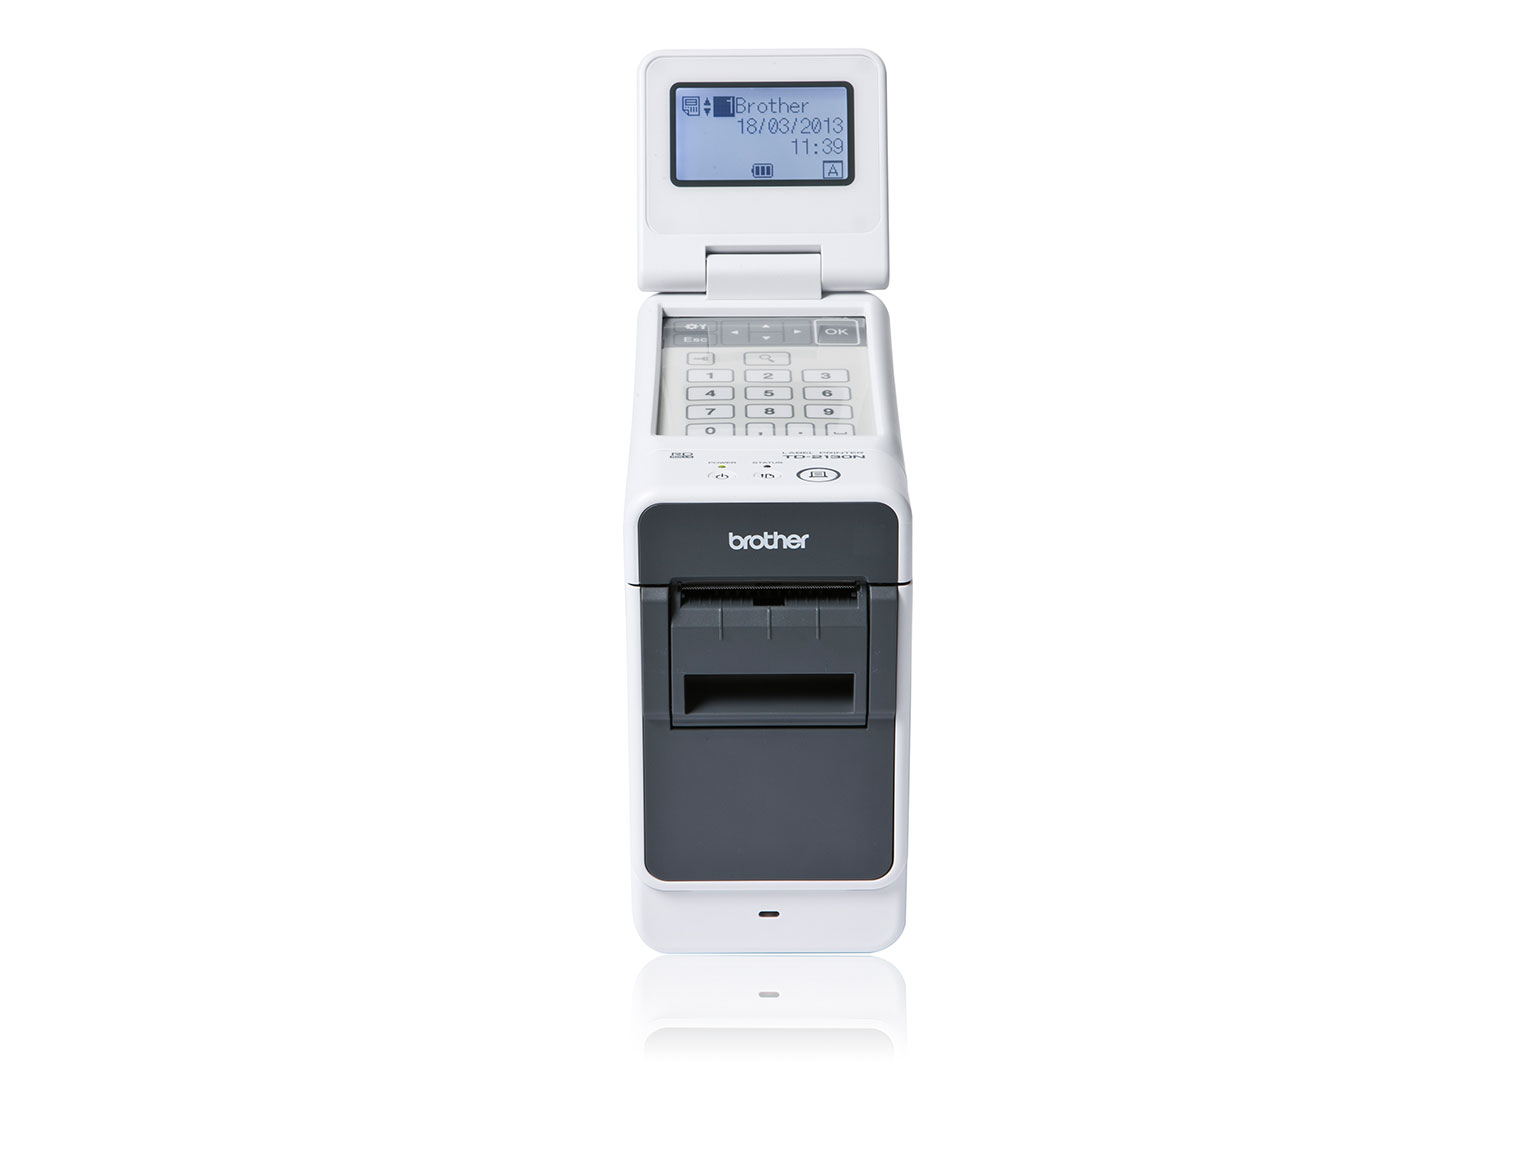 Brother portable printer TD-3120